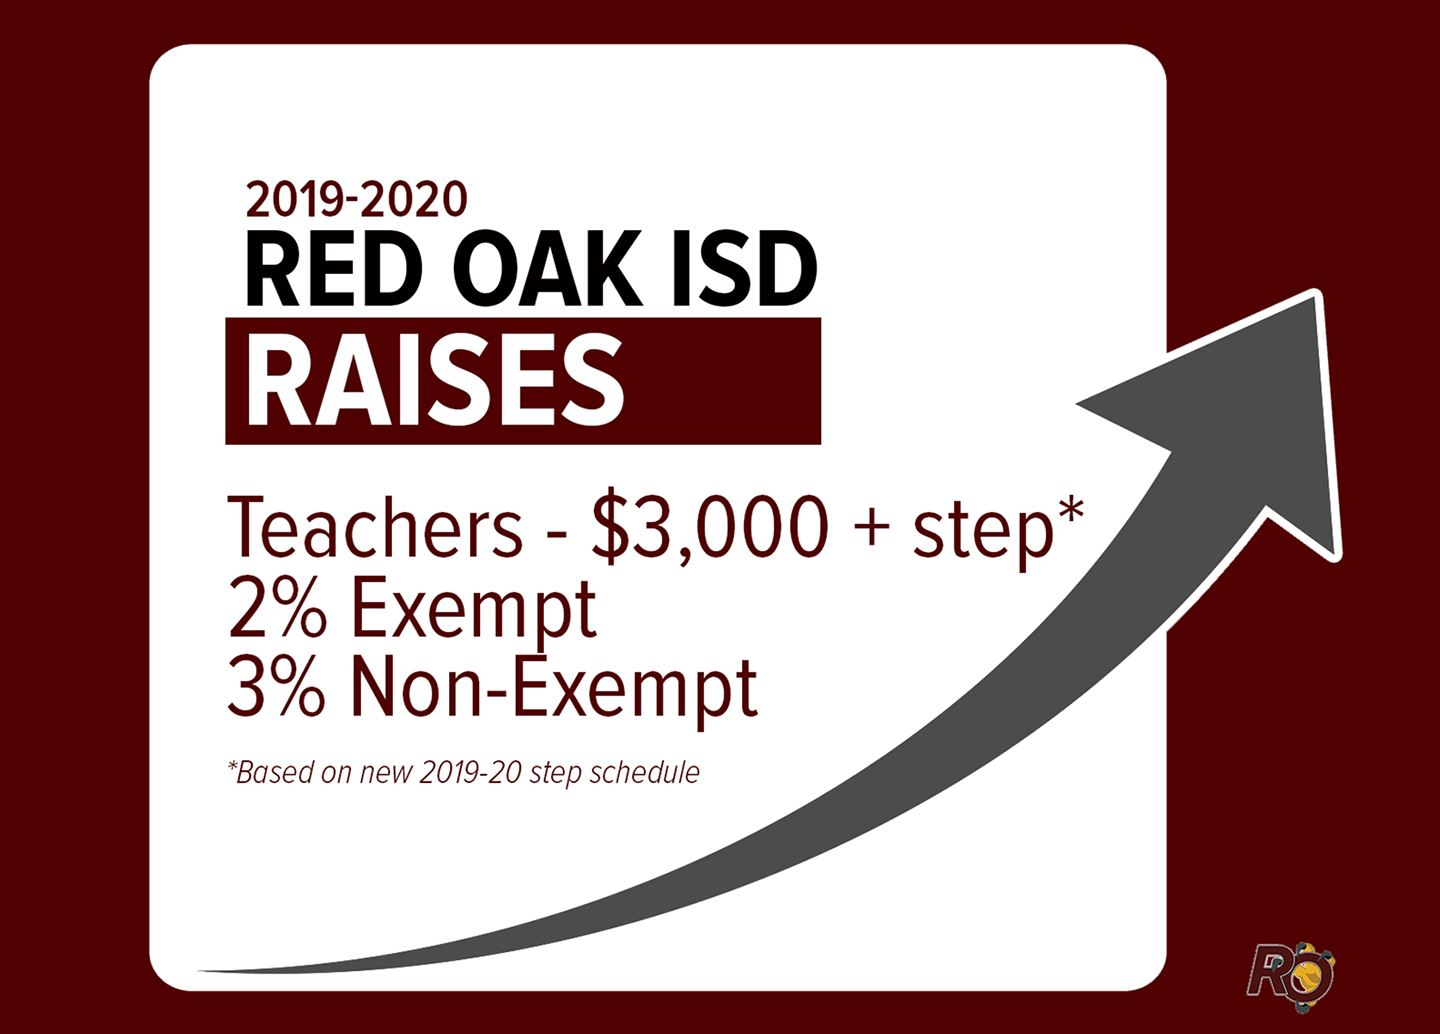 ROISD raises salaries for teachers plus exempt and non-exempt employees